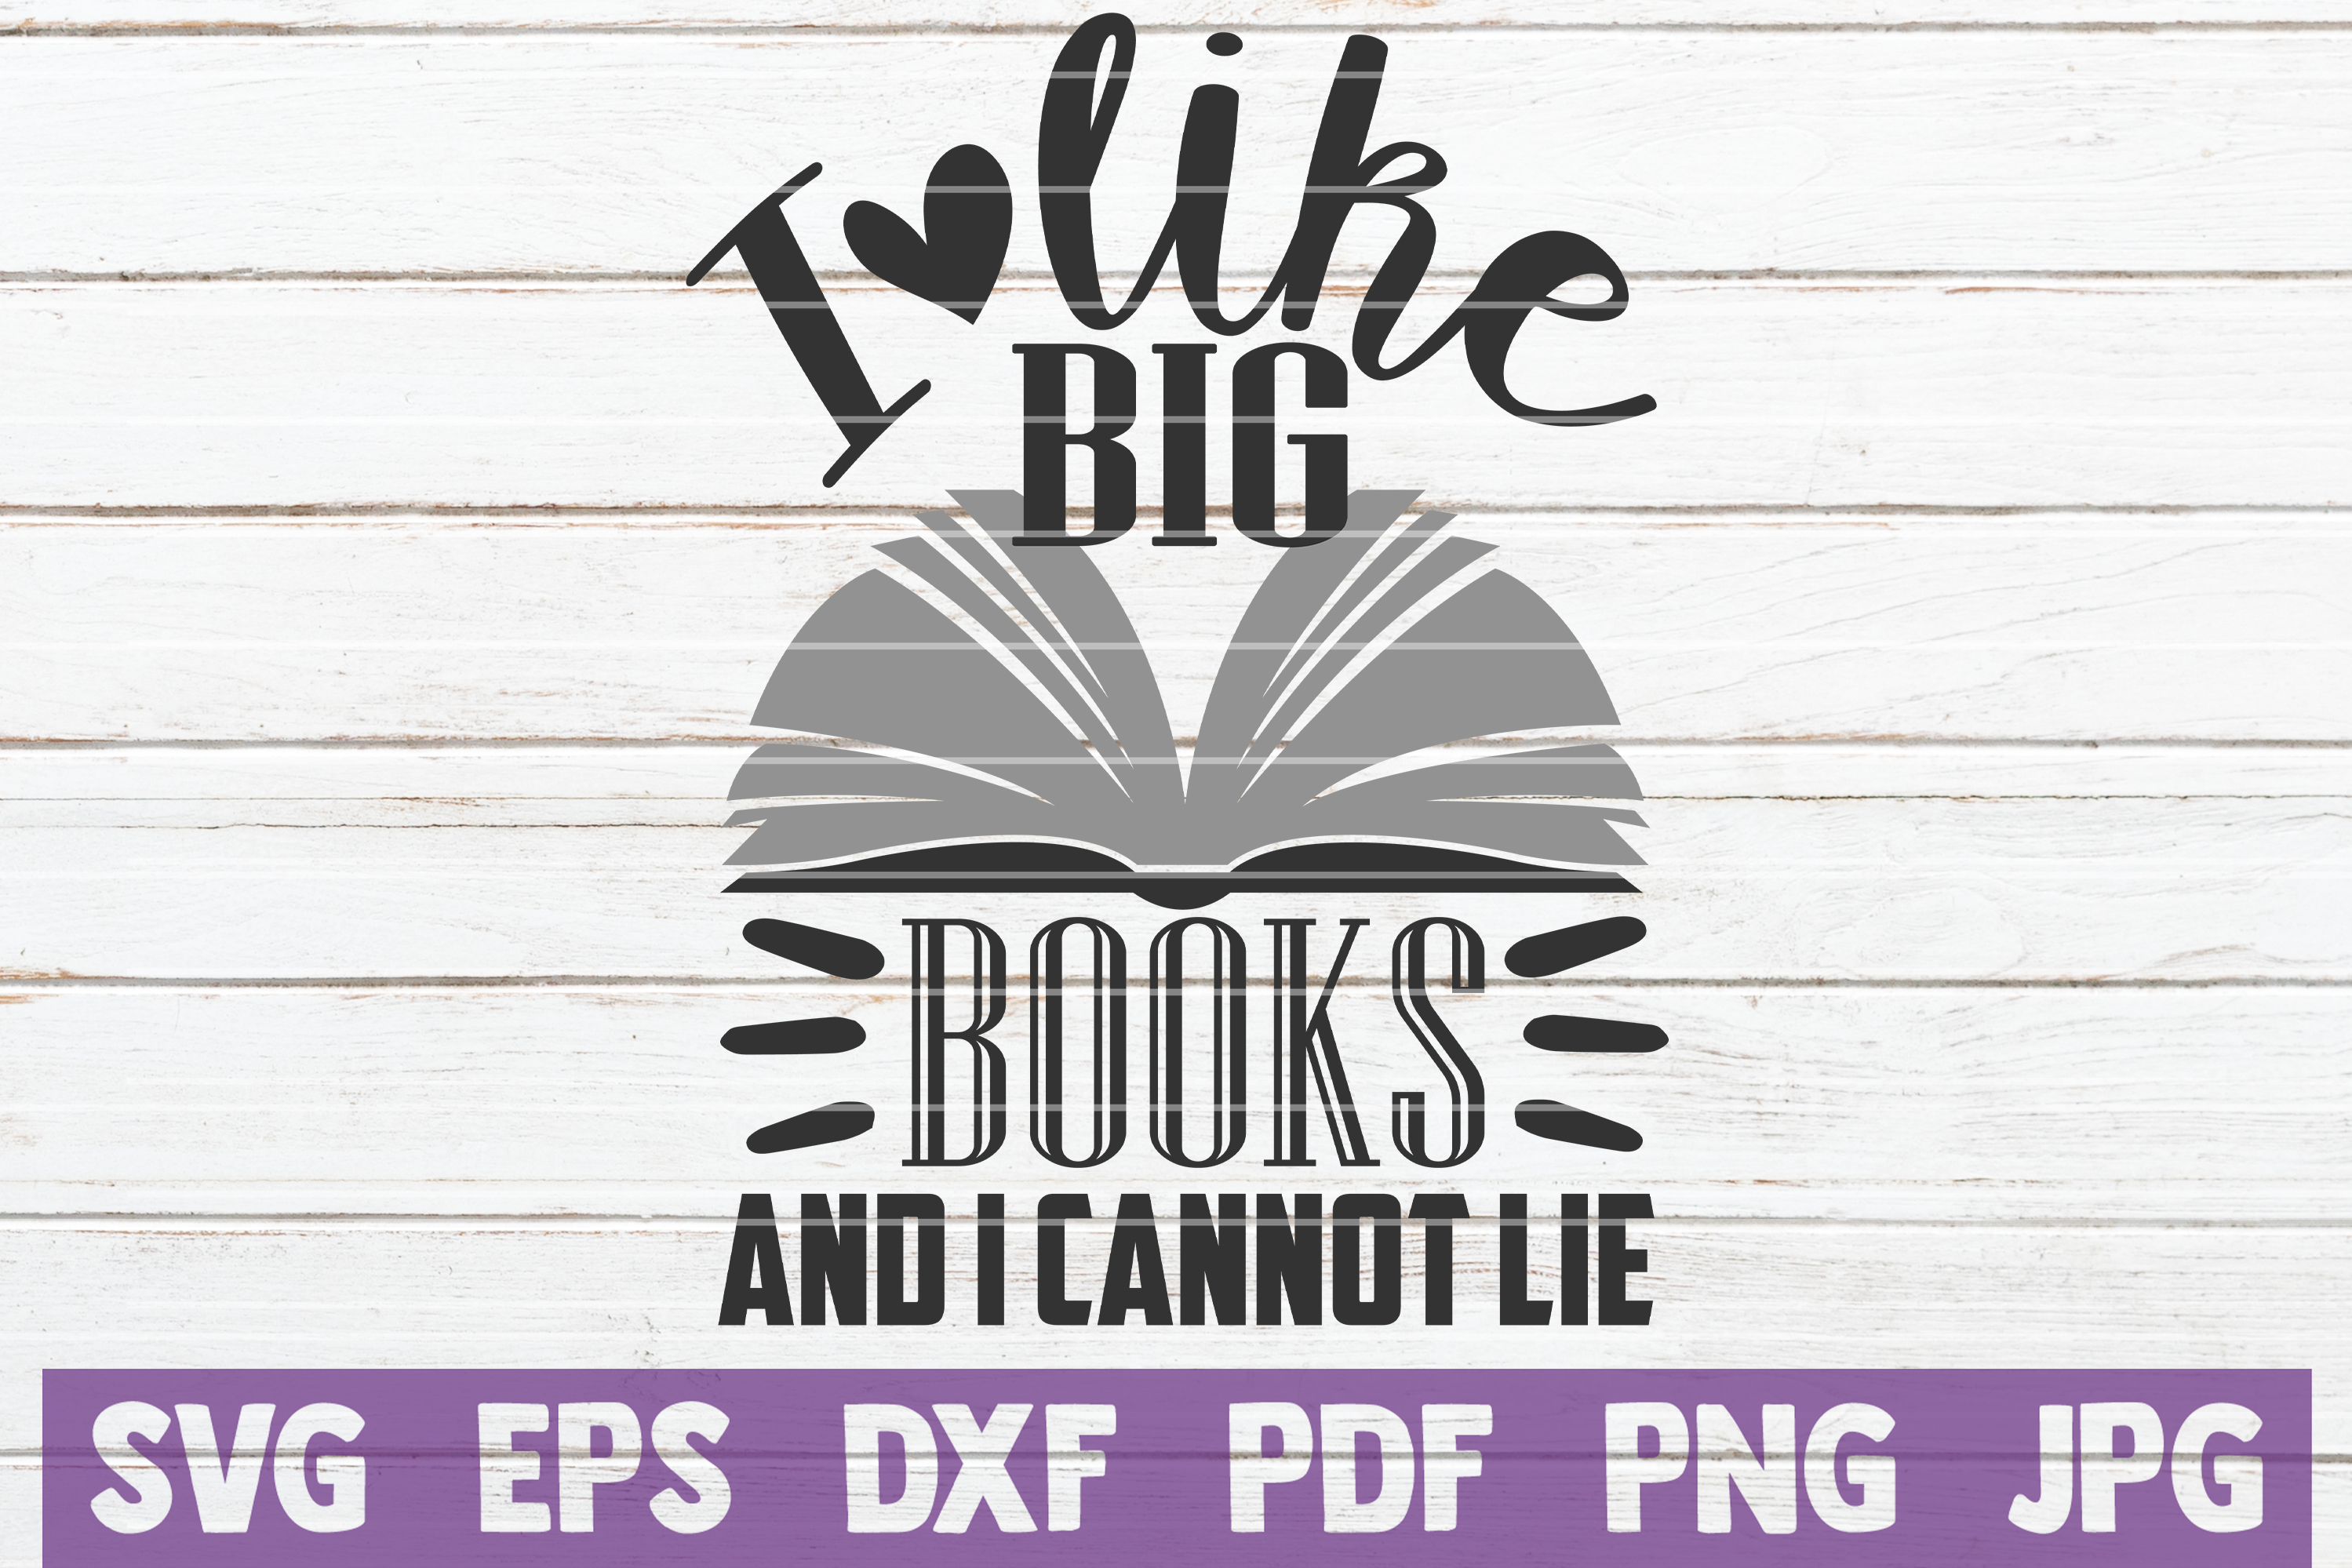 Download Free I Like Big Books And I Cannot Lie Graphic By Mintymarshmallows for Cricut Explore, Silhouette and other cutting machines.